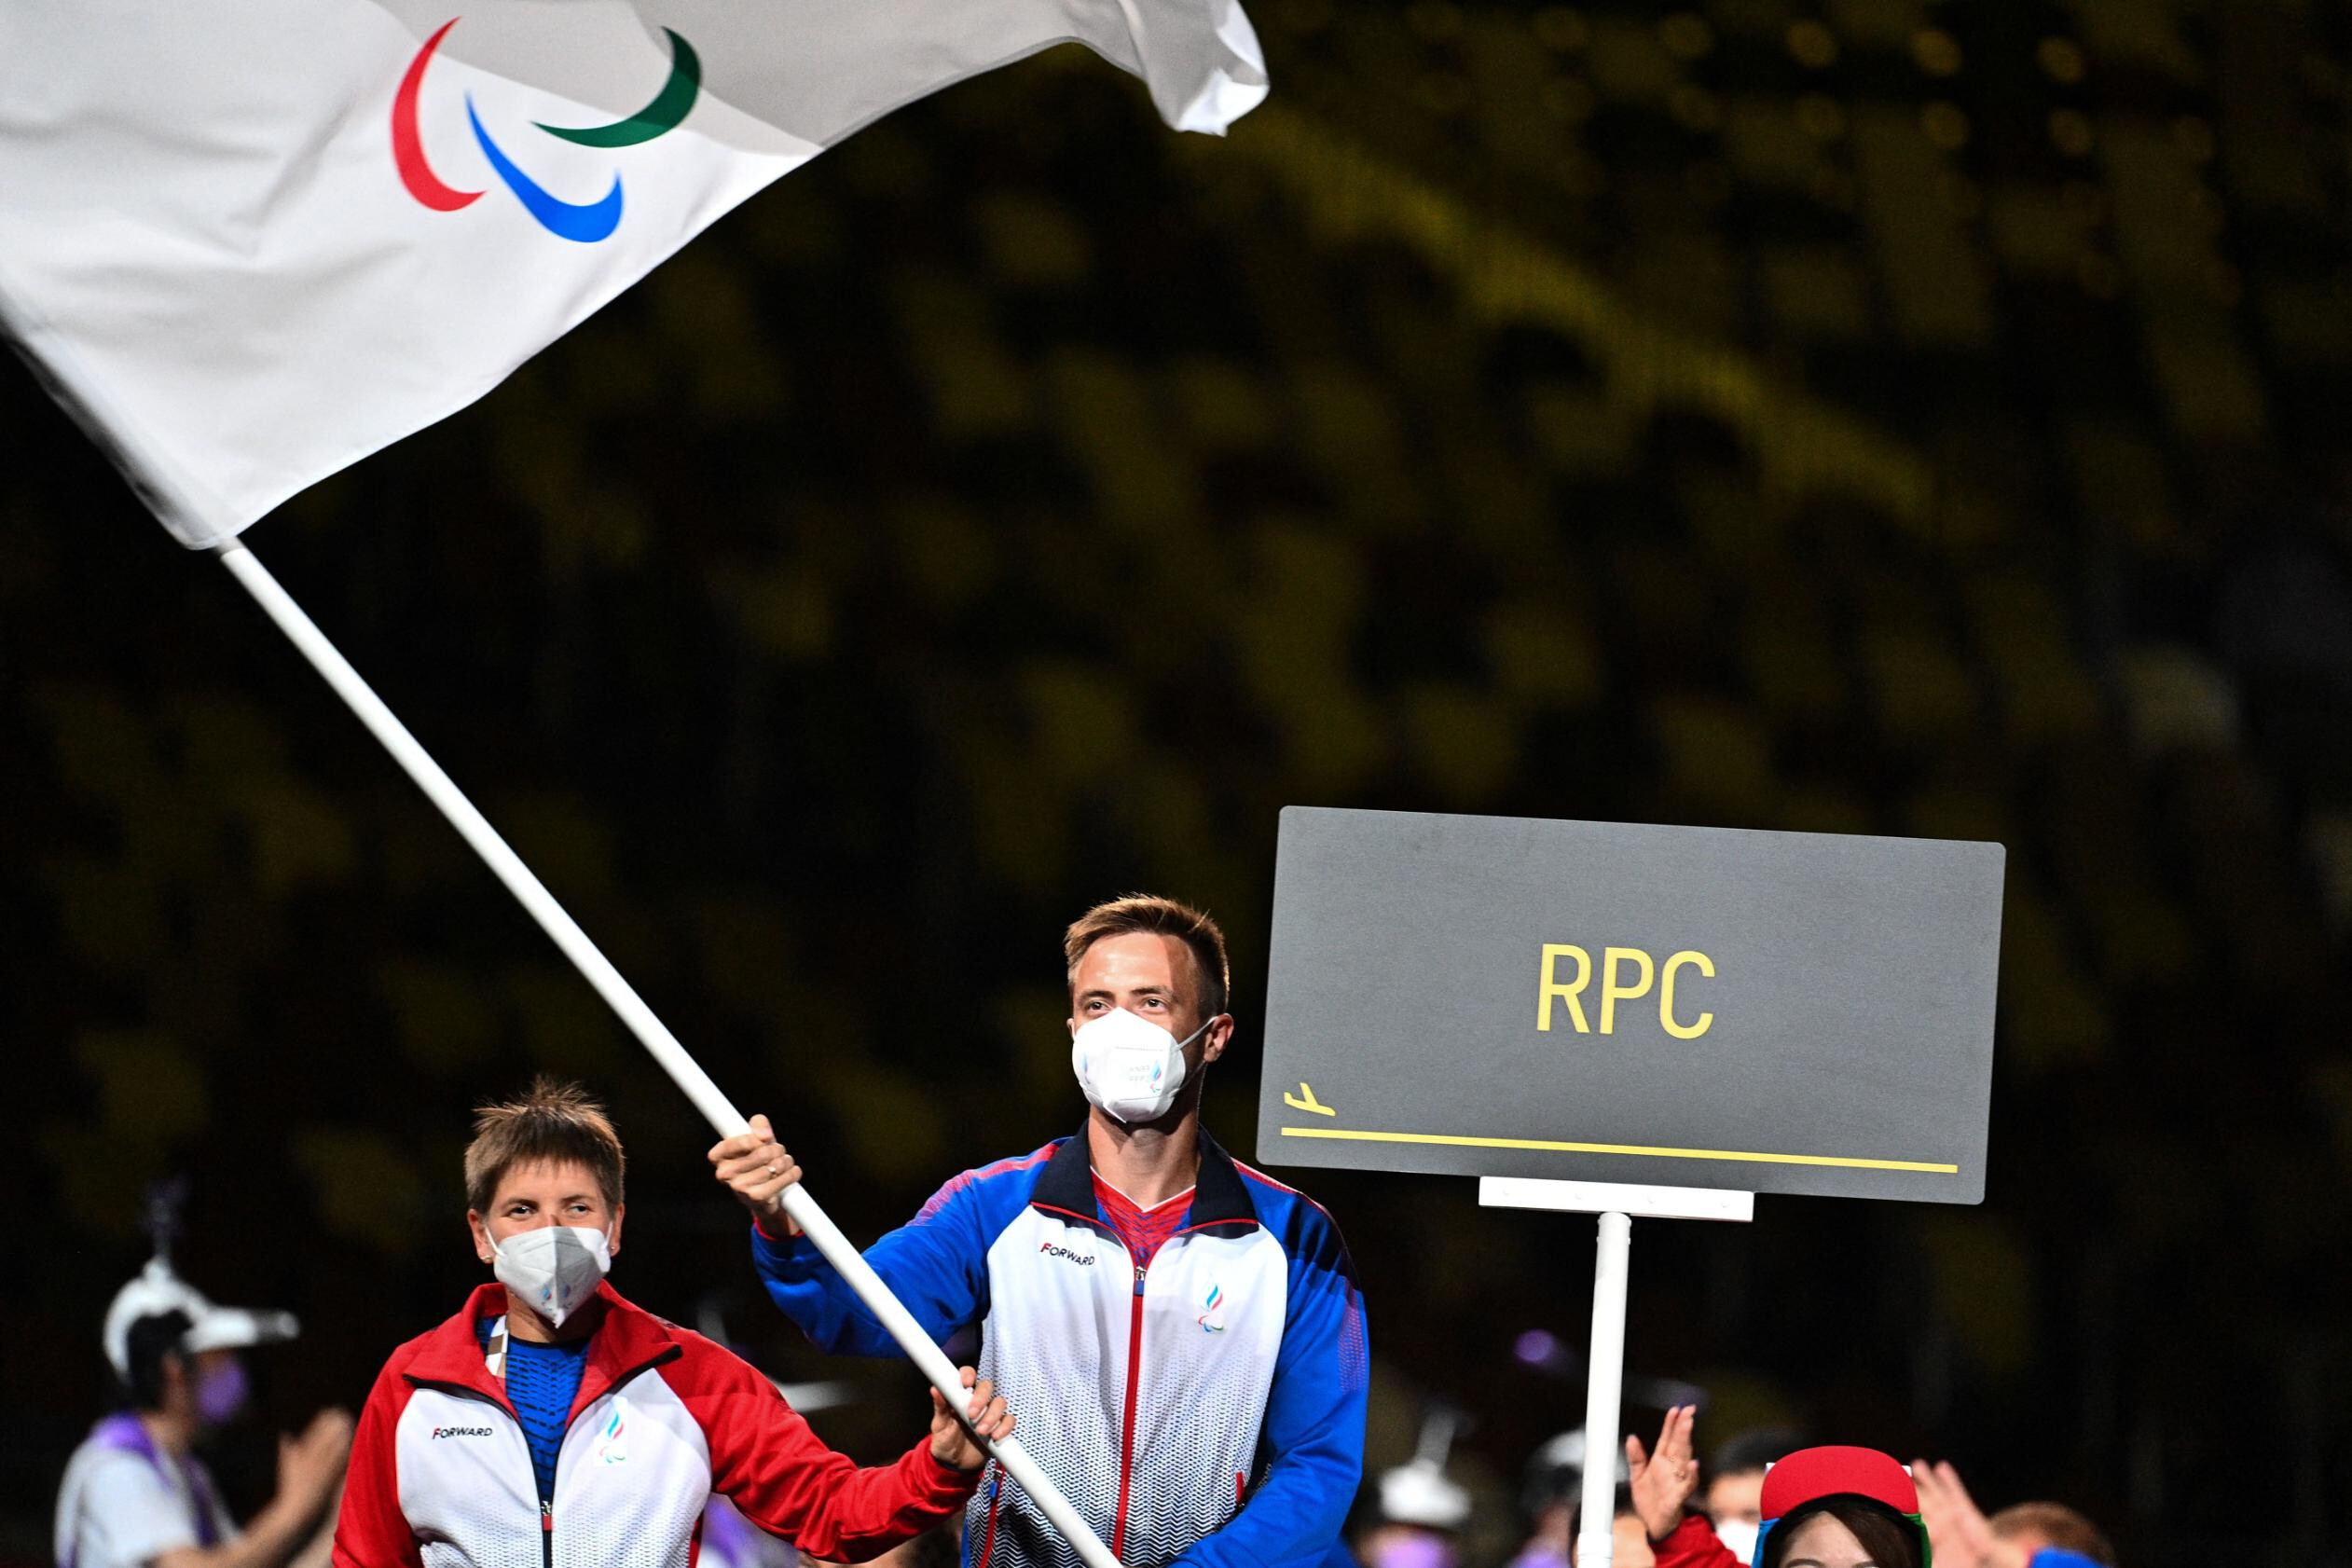 What is RPC? Here's what to know about Russia and the Paralympics